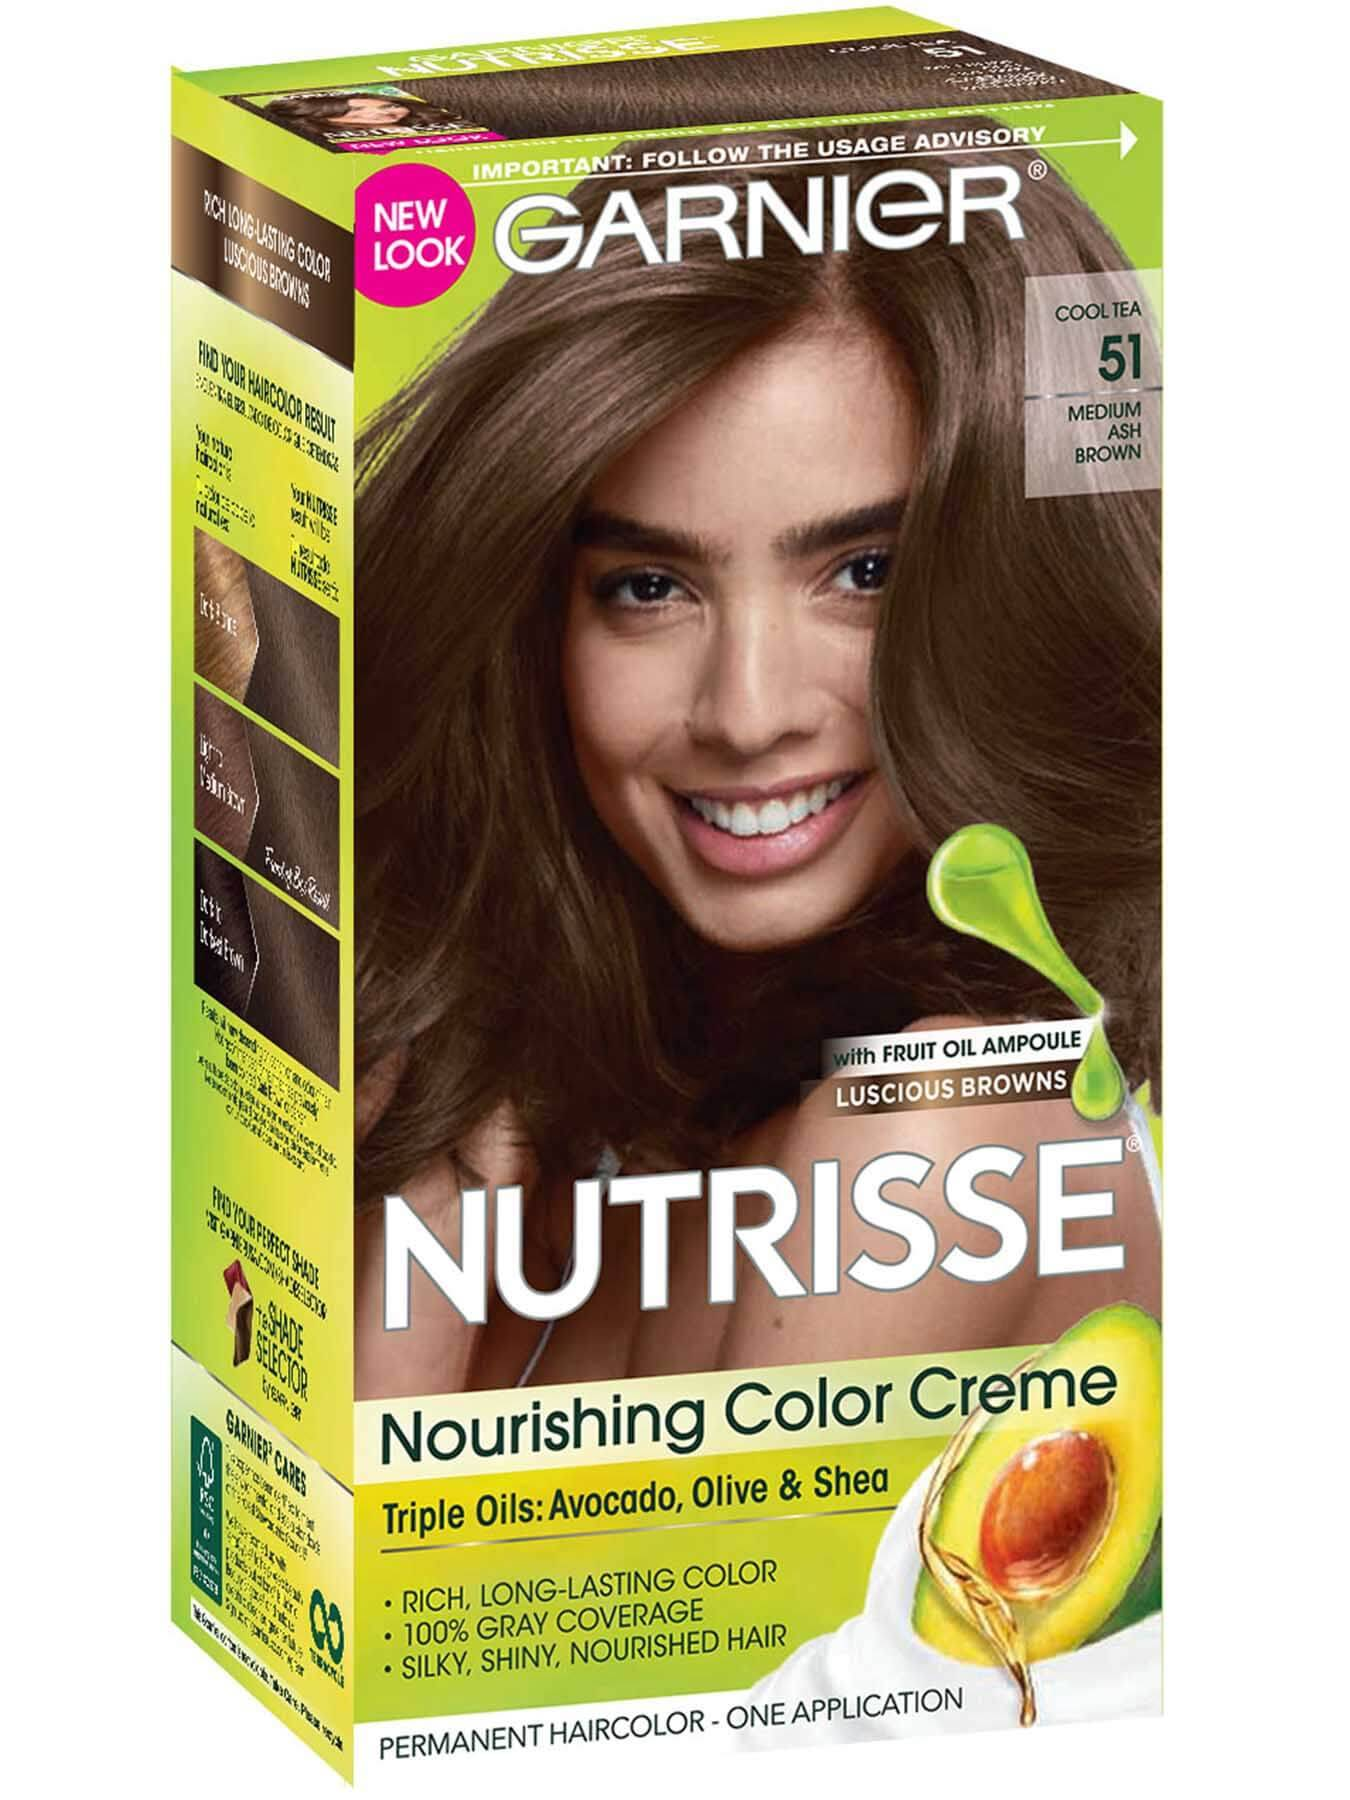 Nutrisse Nourishing Color Creme Medium Ash Brown 51 Garnier